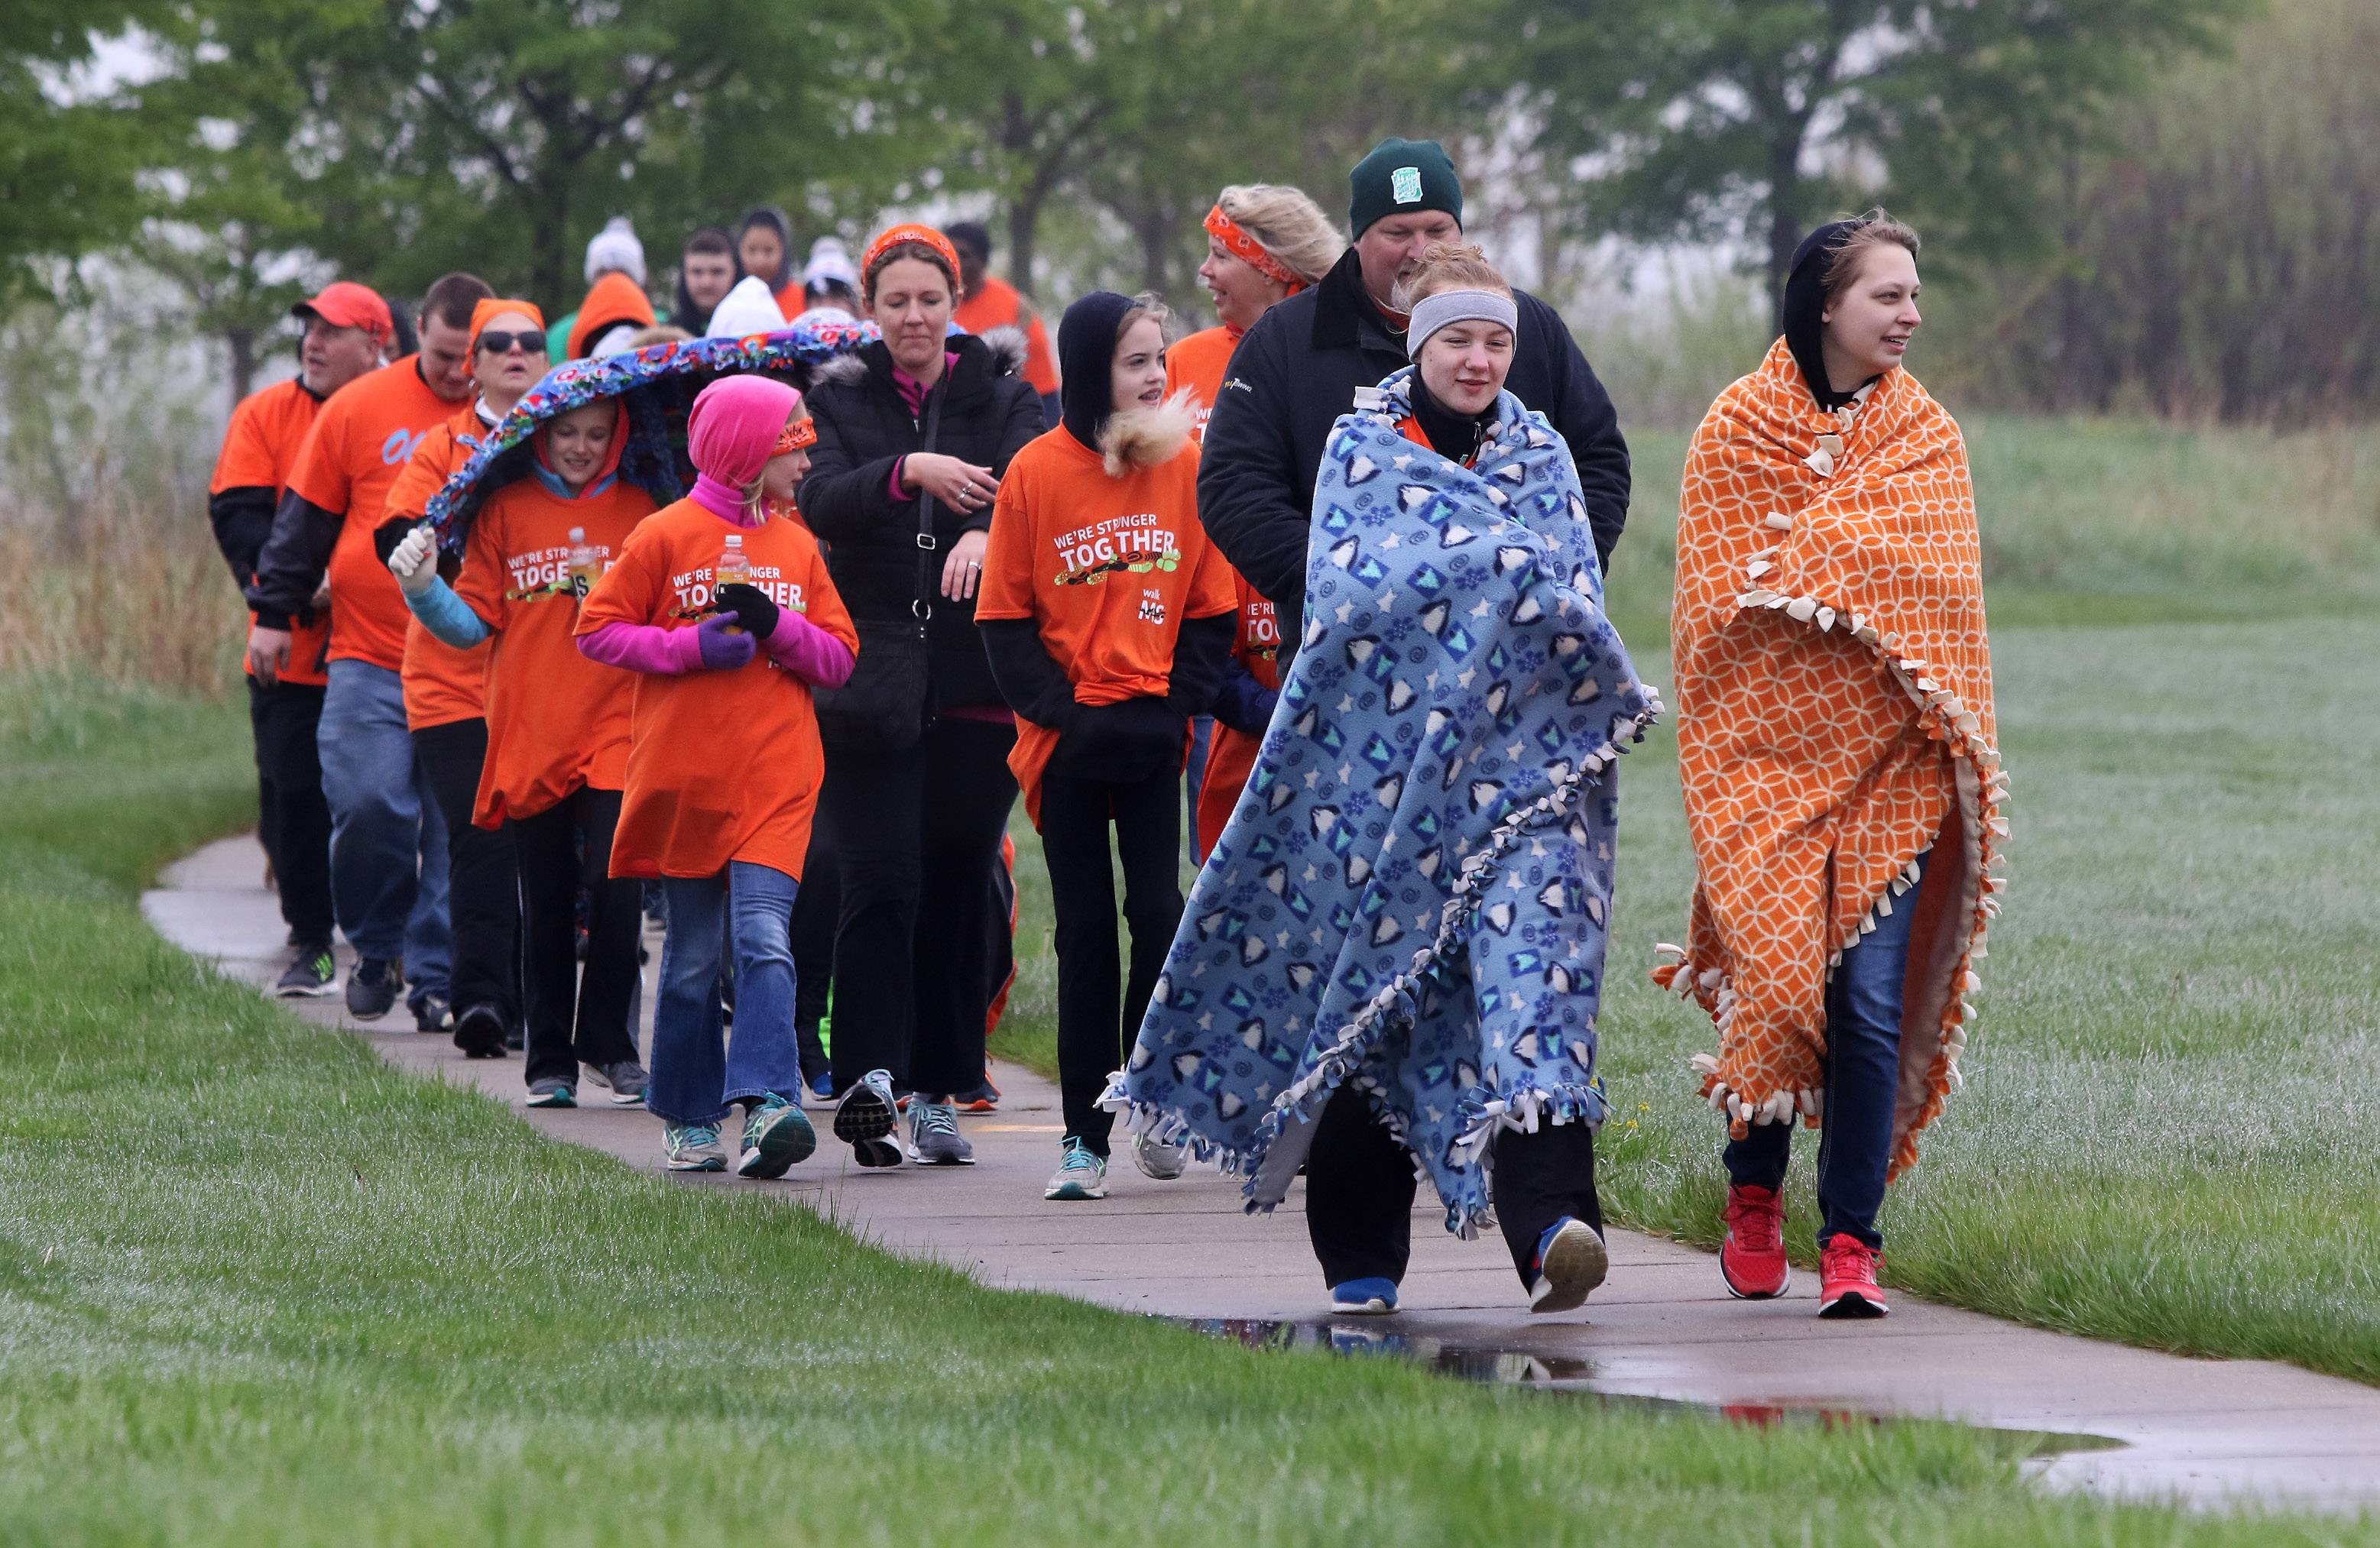 Johanna Duckmann, 16, of Des Plaines, left, and Isabella Markworth, 15, of Mount Prospect try to stay warm as they walk with the crowd during the Walk MS Northwest Suburbs on Sunday starting at Cabela's in Hoffman Estates. More than 1,000 people bundled up to walk in the misty morning to help raise money for multiple sclerosis research.